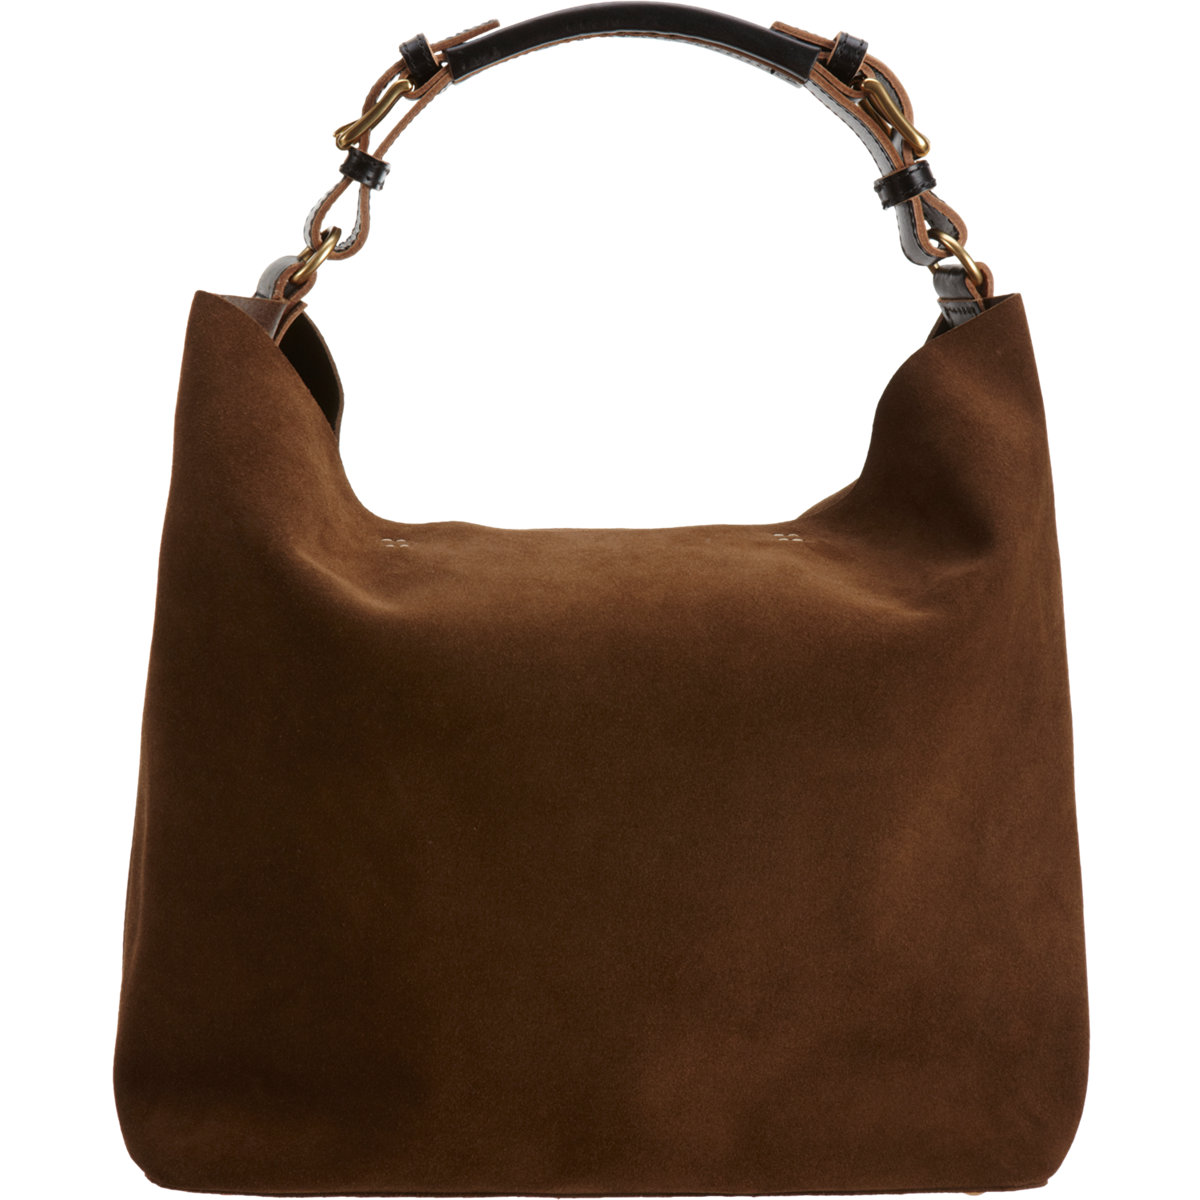 Preferred Lyst - Marni Suede Hobo Bag in Brown NP47